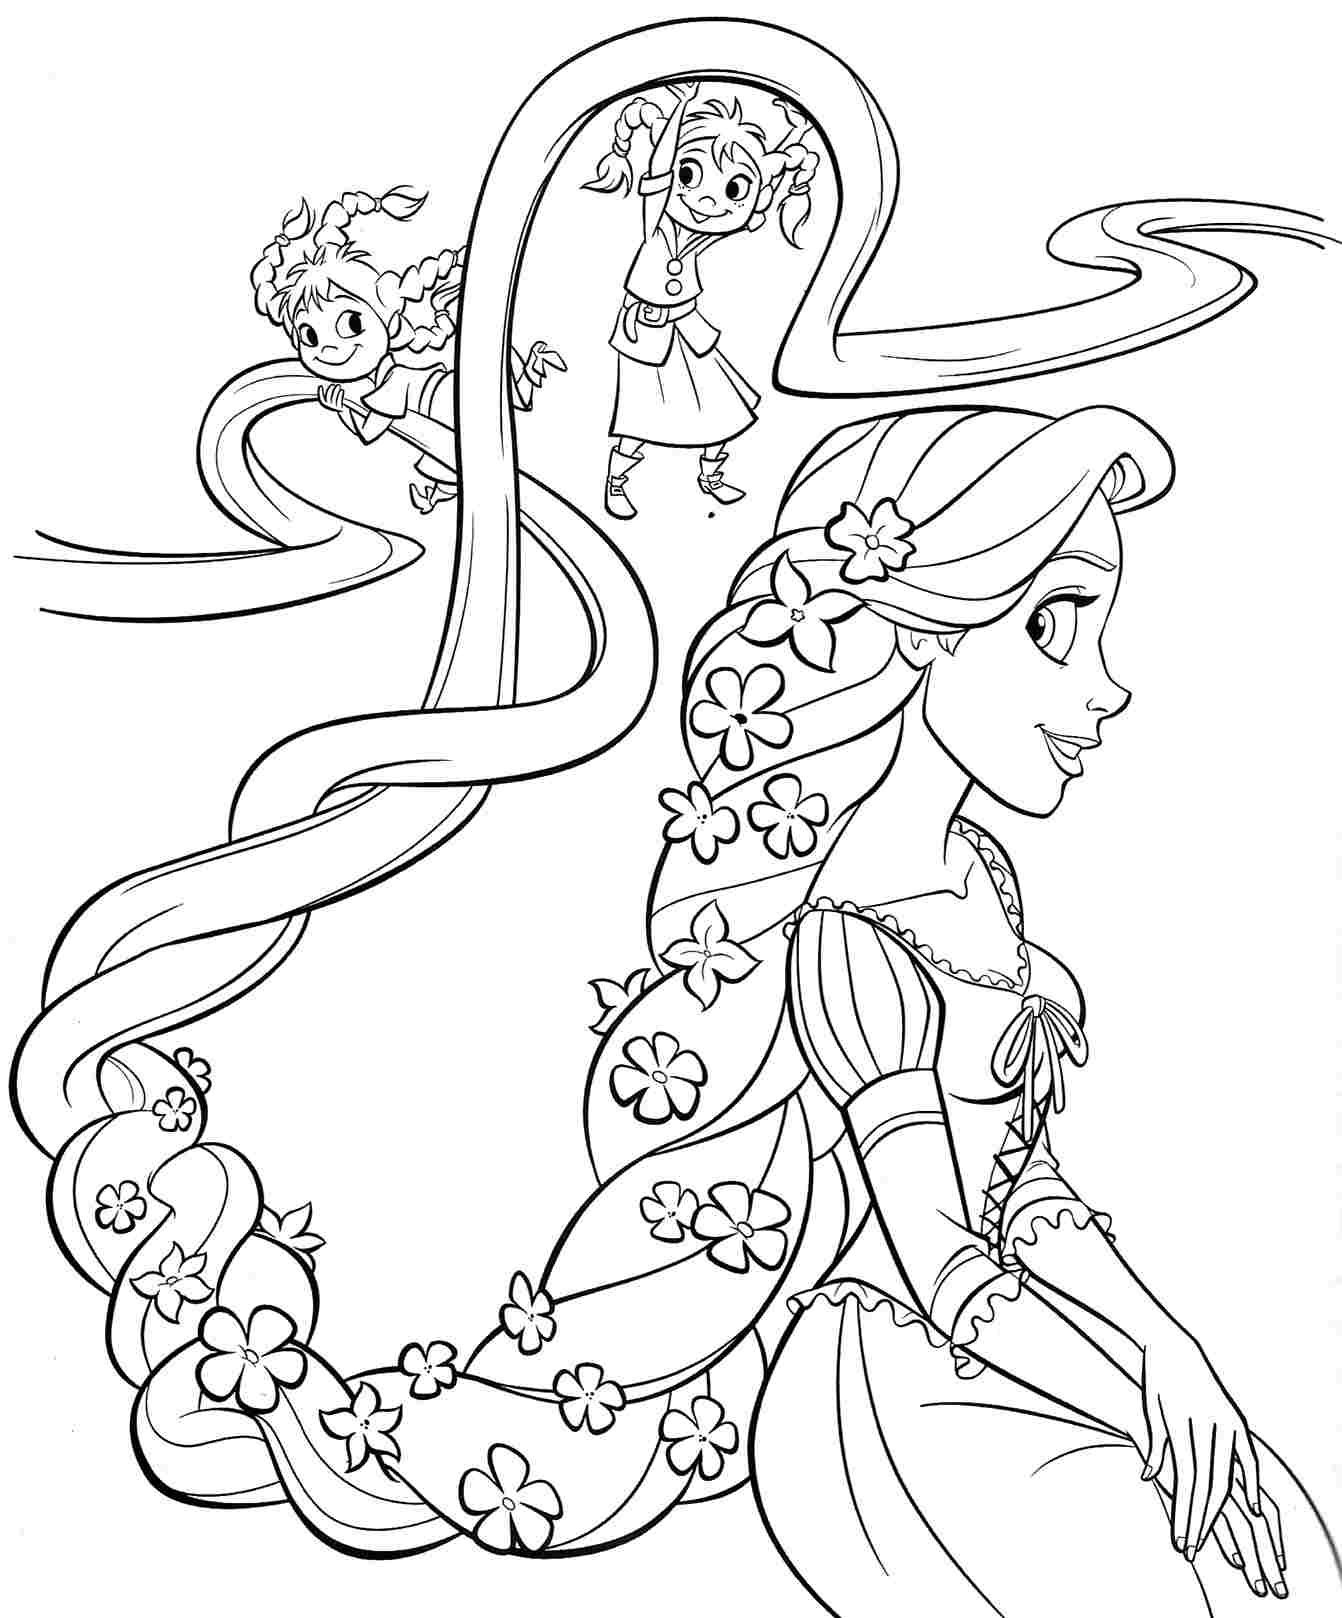 Coloring pictures disney characters - Printable Free Disney Princess Rapunzel Coloring Sheets For Kids